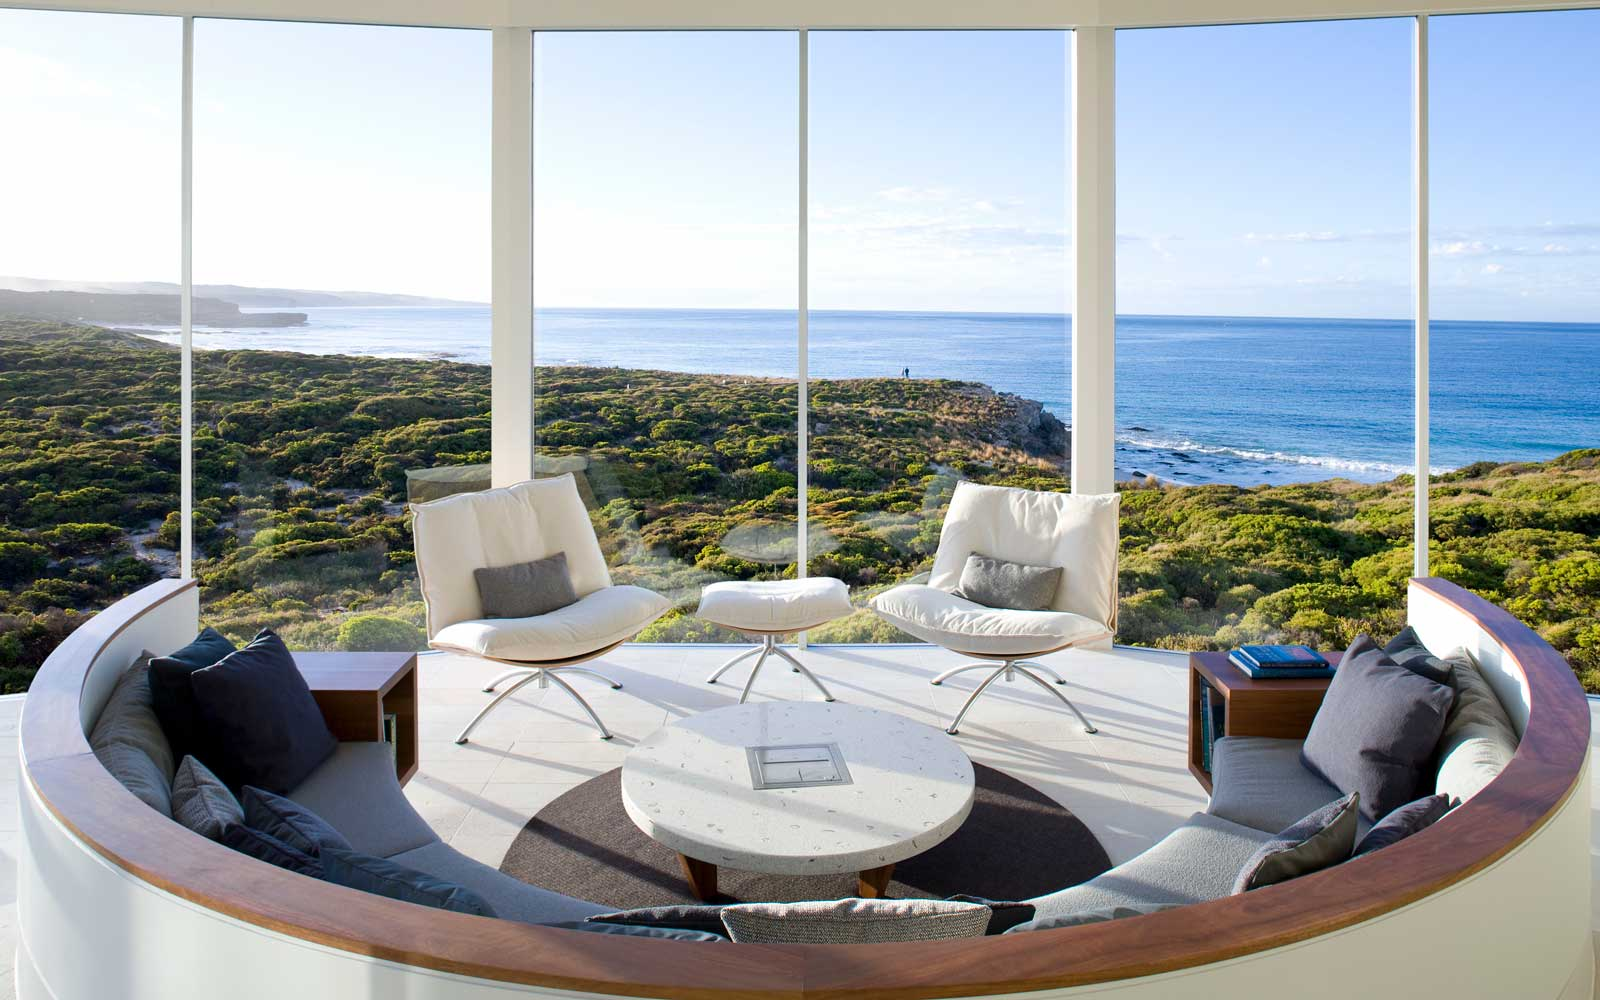 View from the spa at Southern Ocean Lodge, Kangaroo Island, Australia